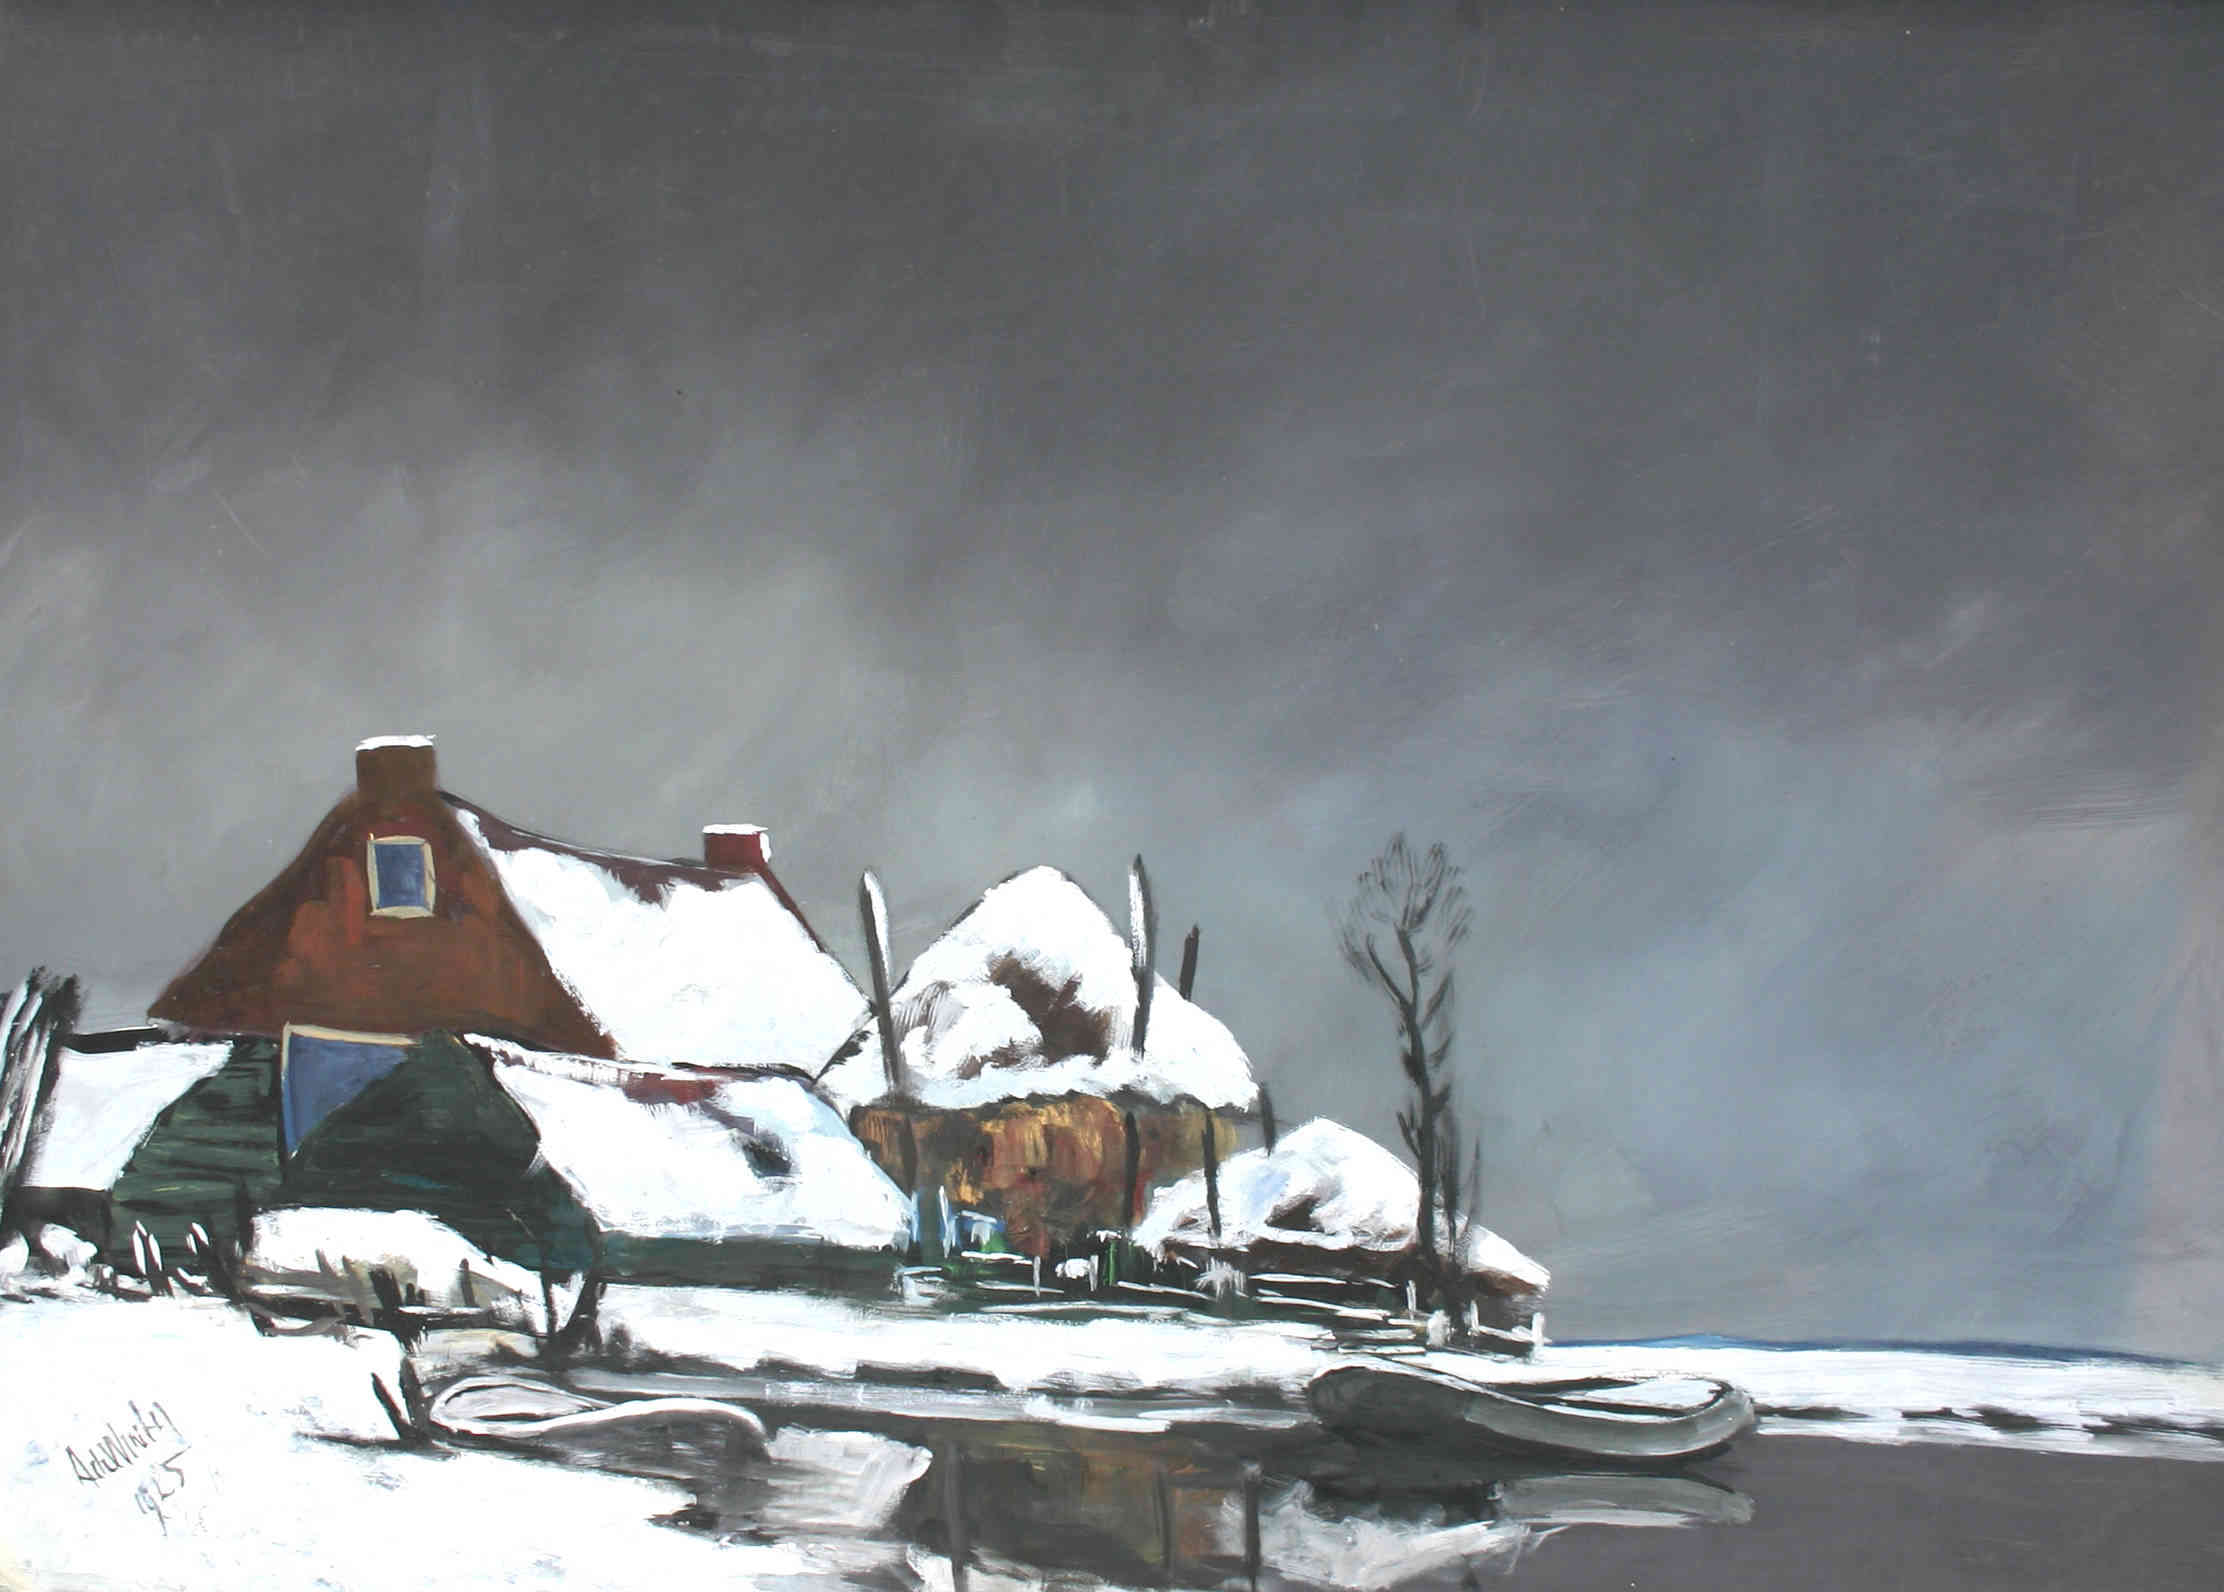 Boerderij in winterlandschap Janus de Winter (1882-1951) - Kunsthandel Studio 2000